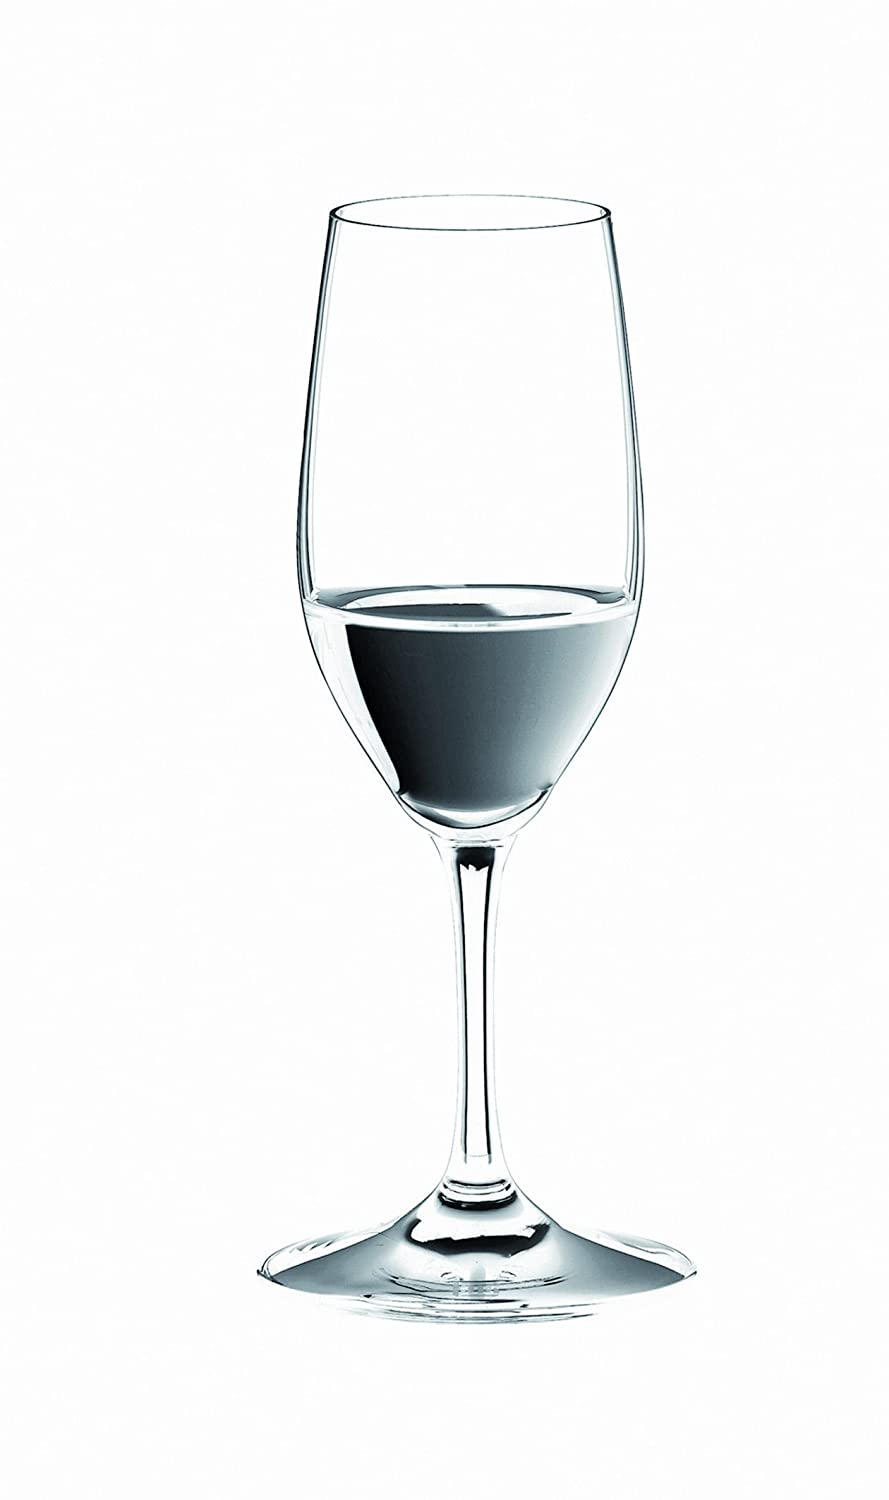 Riedel Ouverture Beer/Ice Water Glass, Set of 2 6408/11